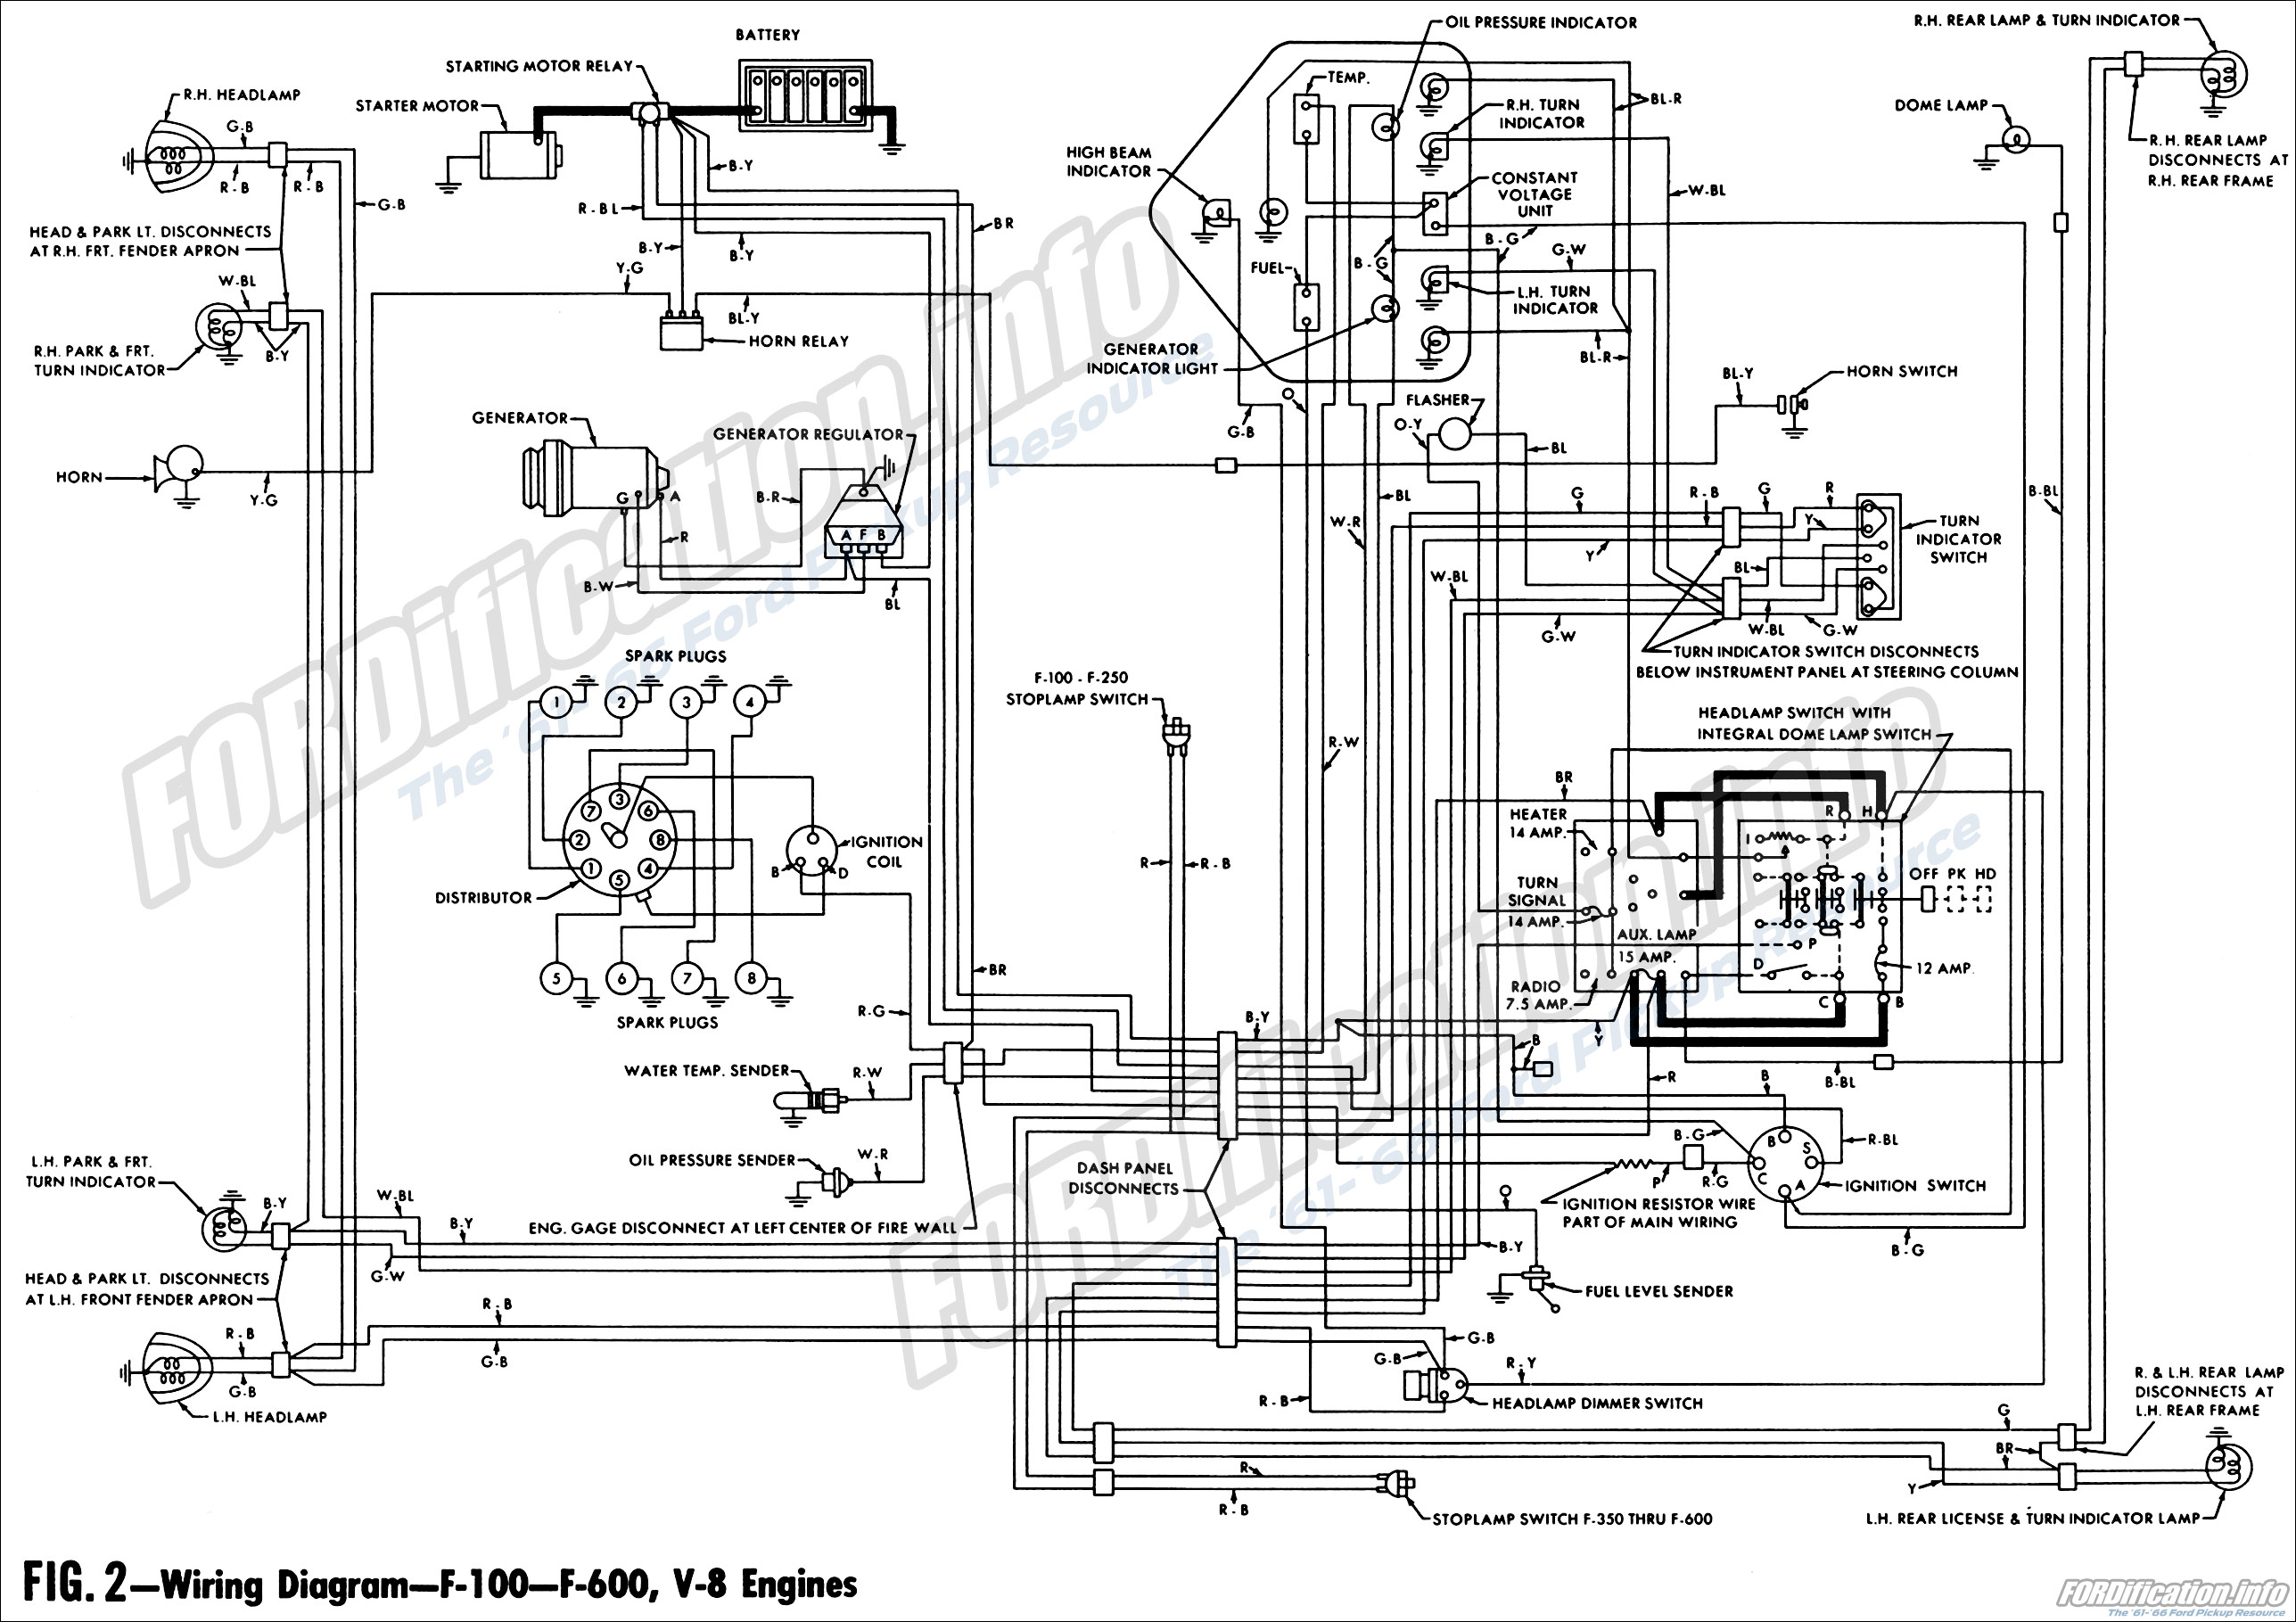 Pleasant 61 Ford F100 Wiring Diagram Wiring Diagram Wiring Digital Resources Remcakbiperorg